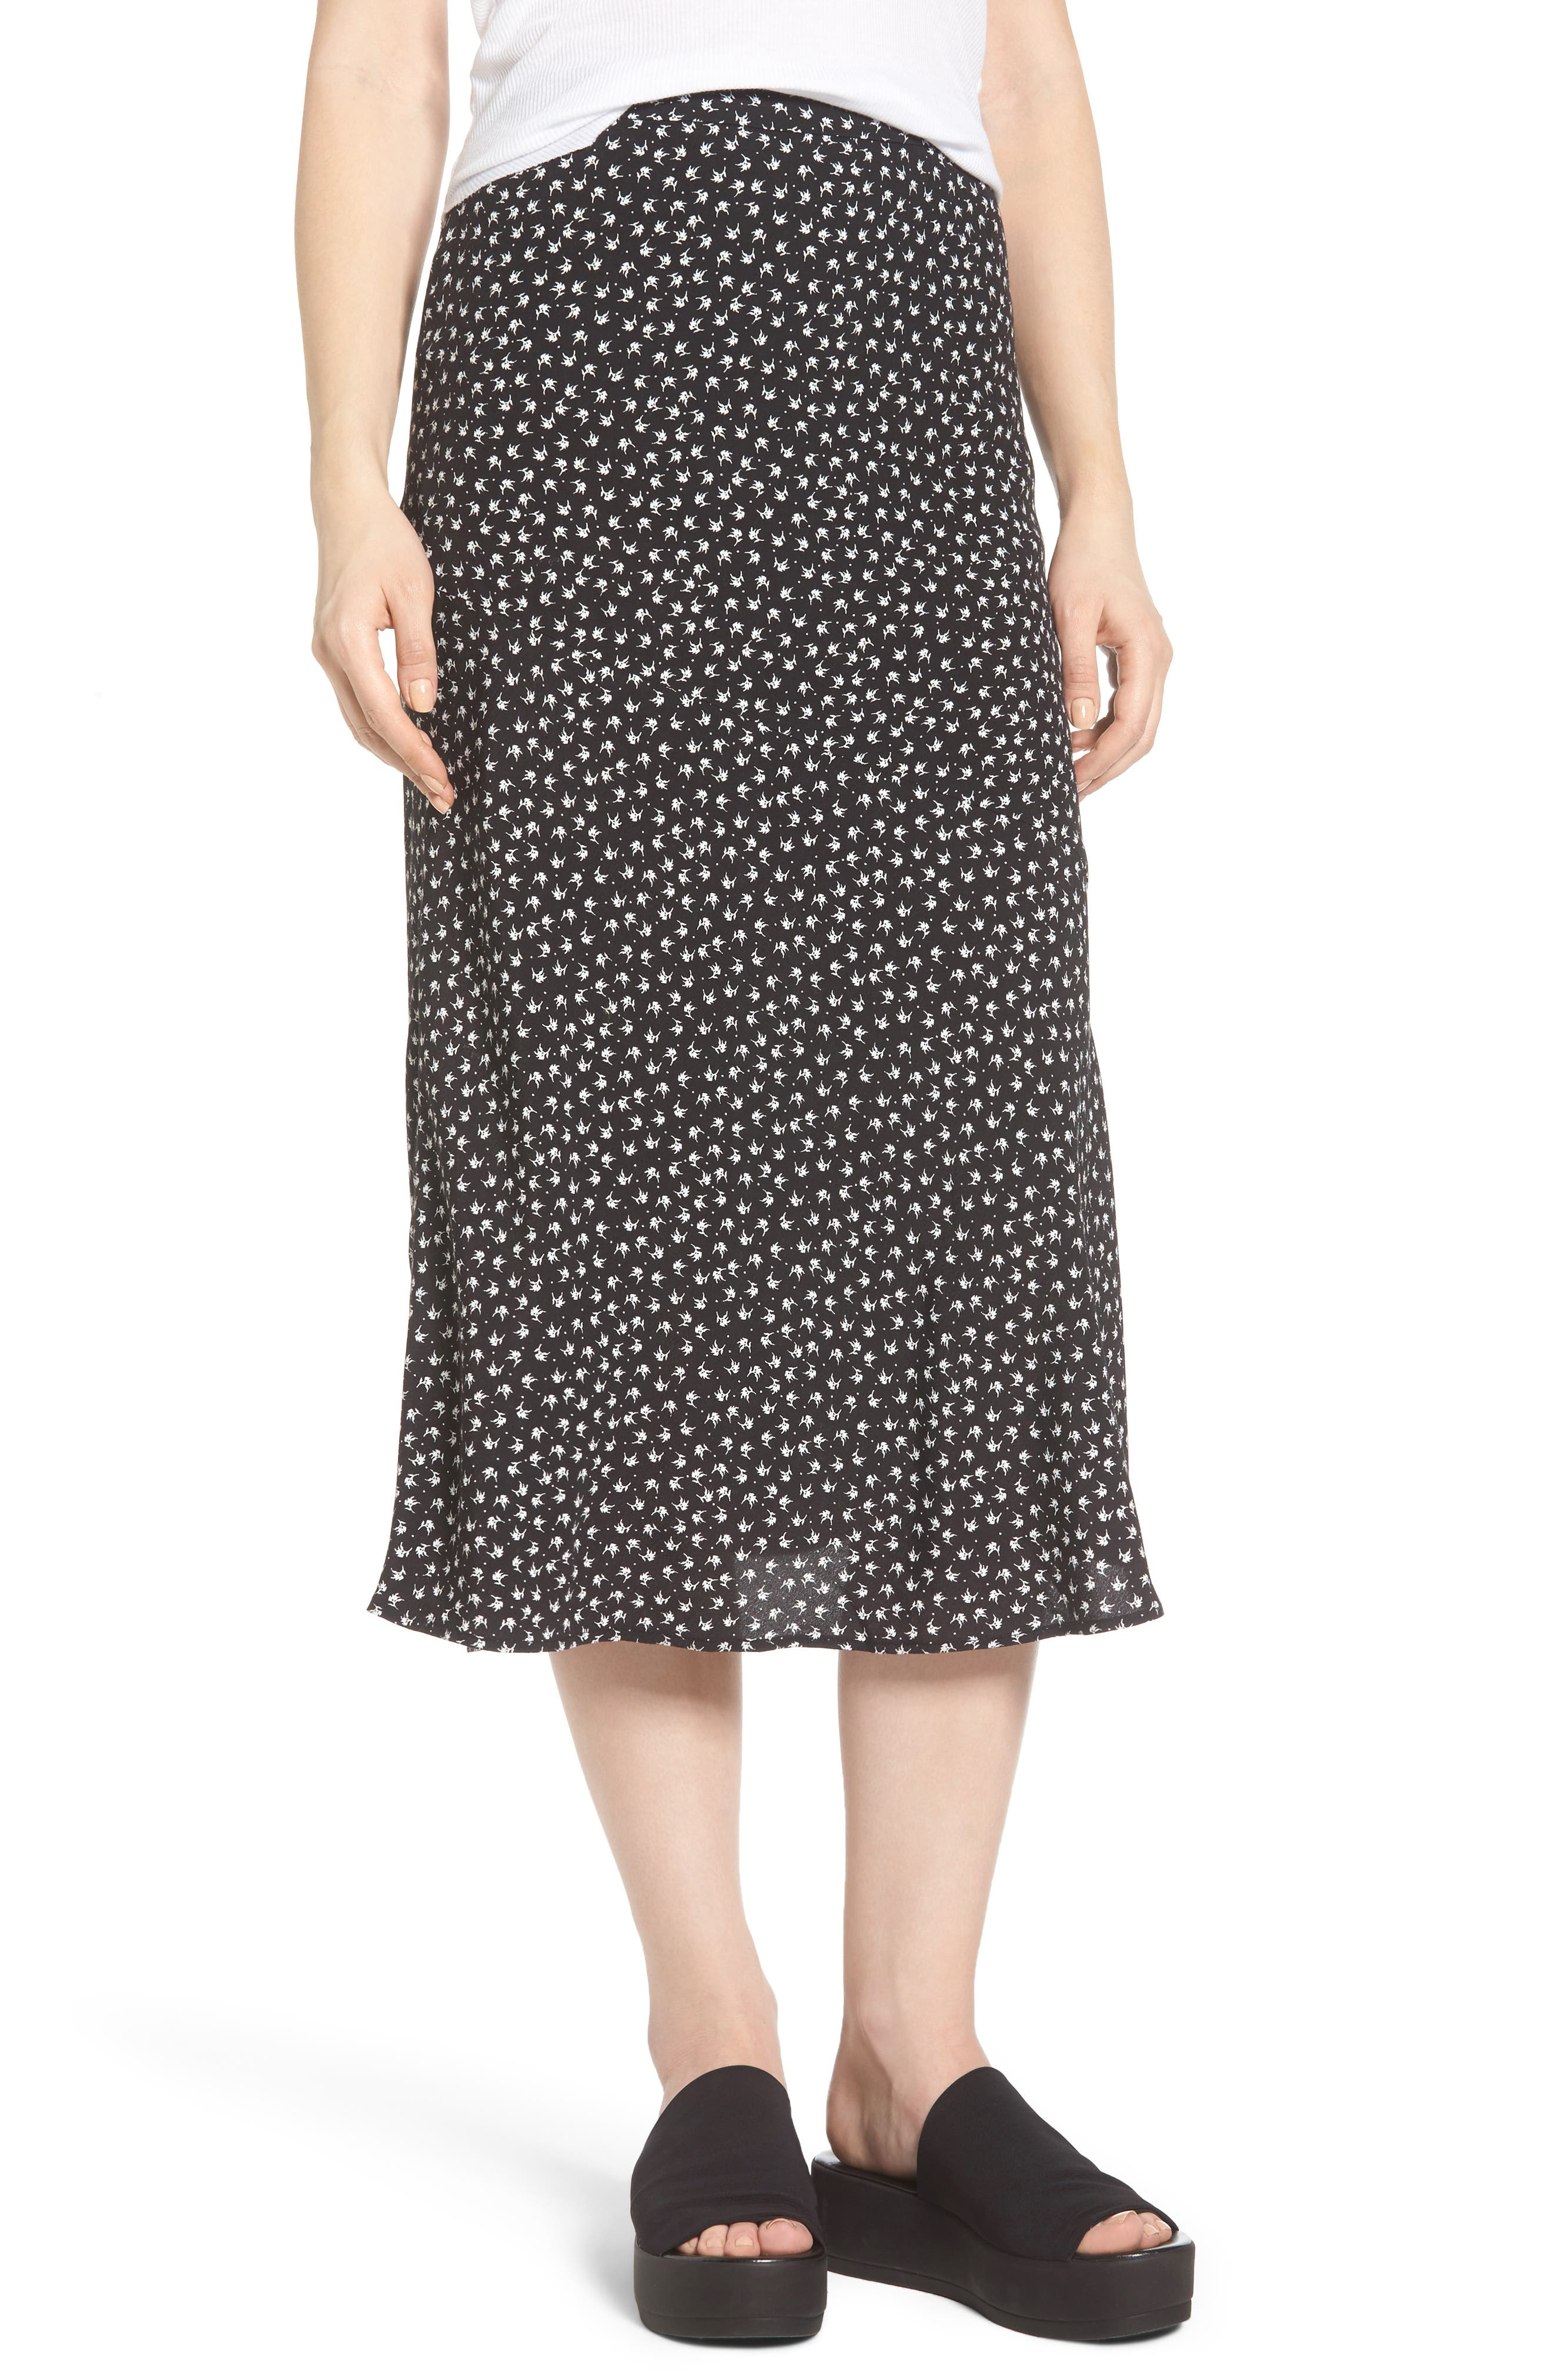 Print Bias Cut Skirt,                         Main,                         color, Black Tsd Stem